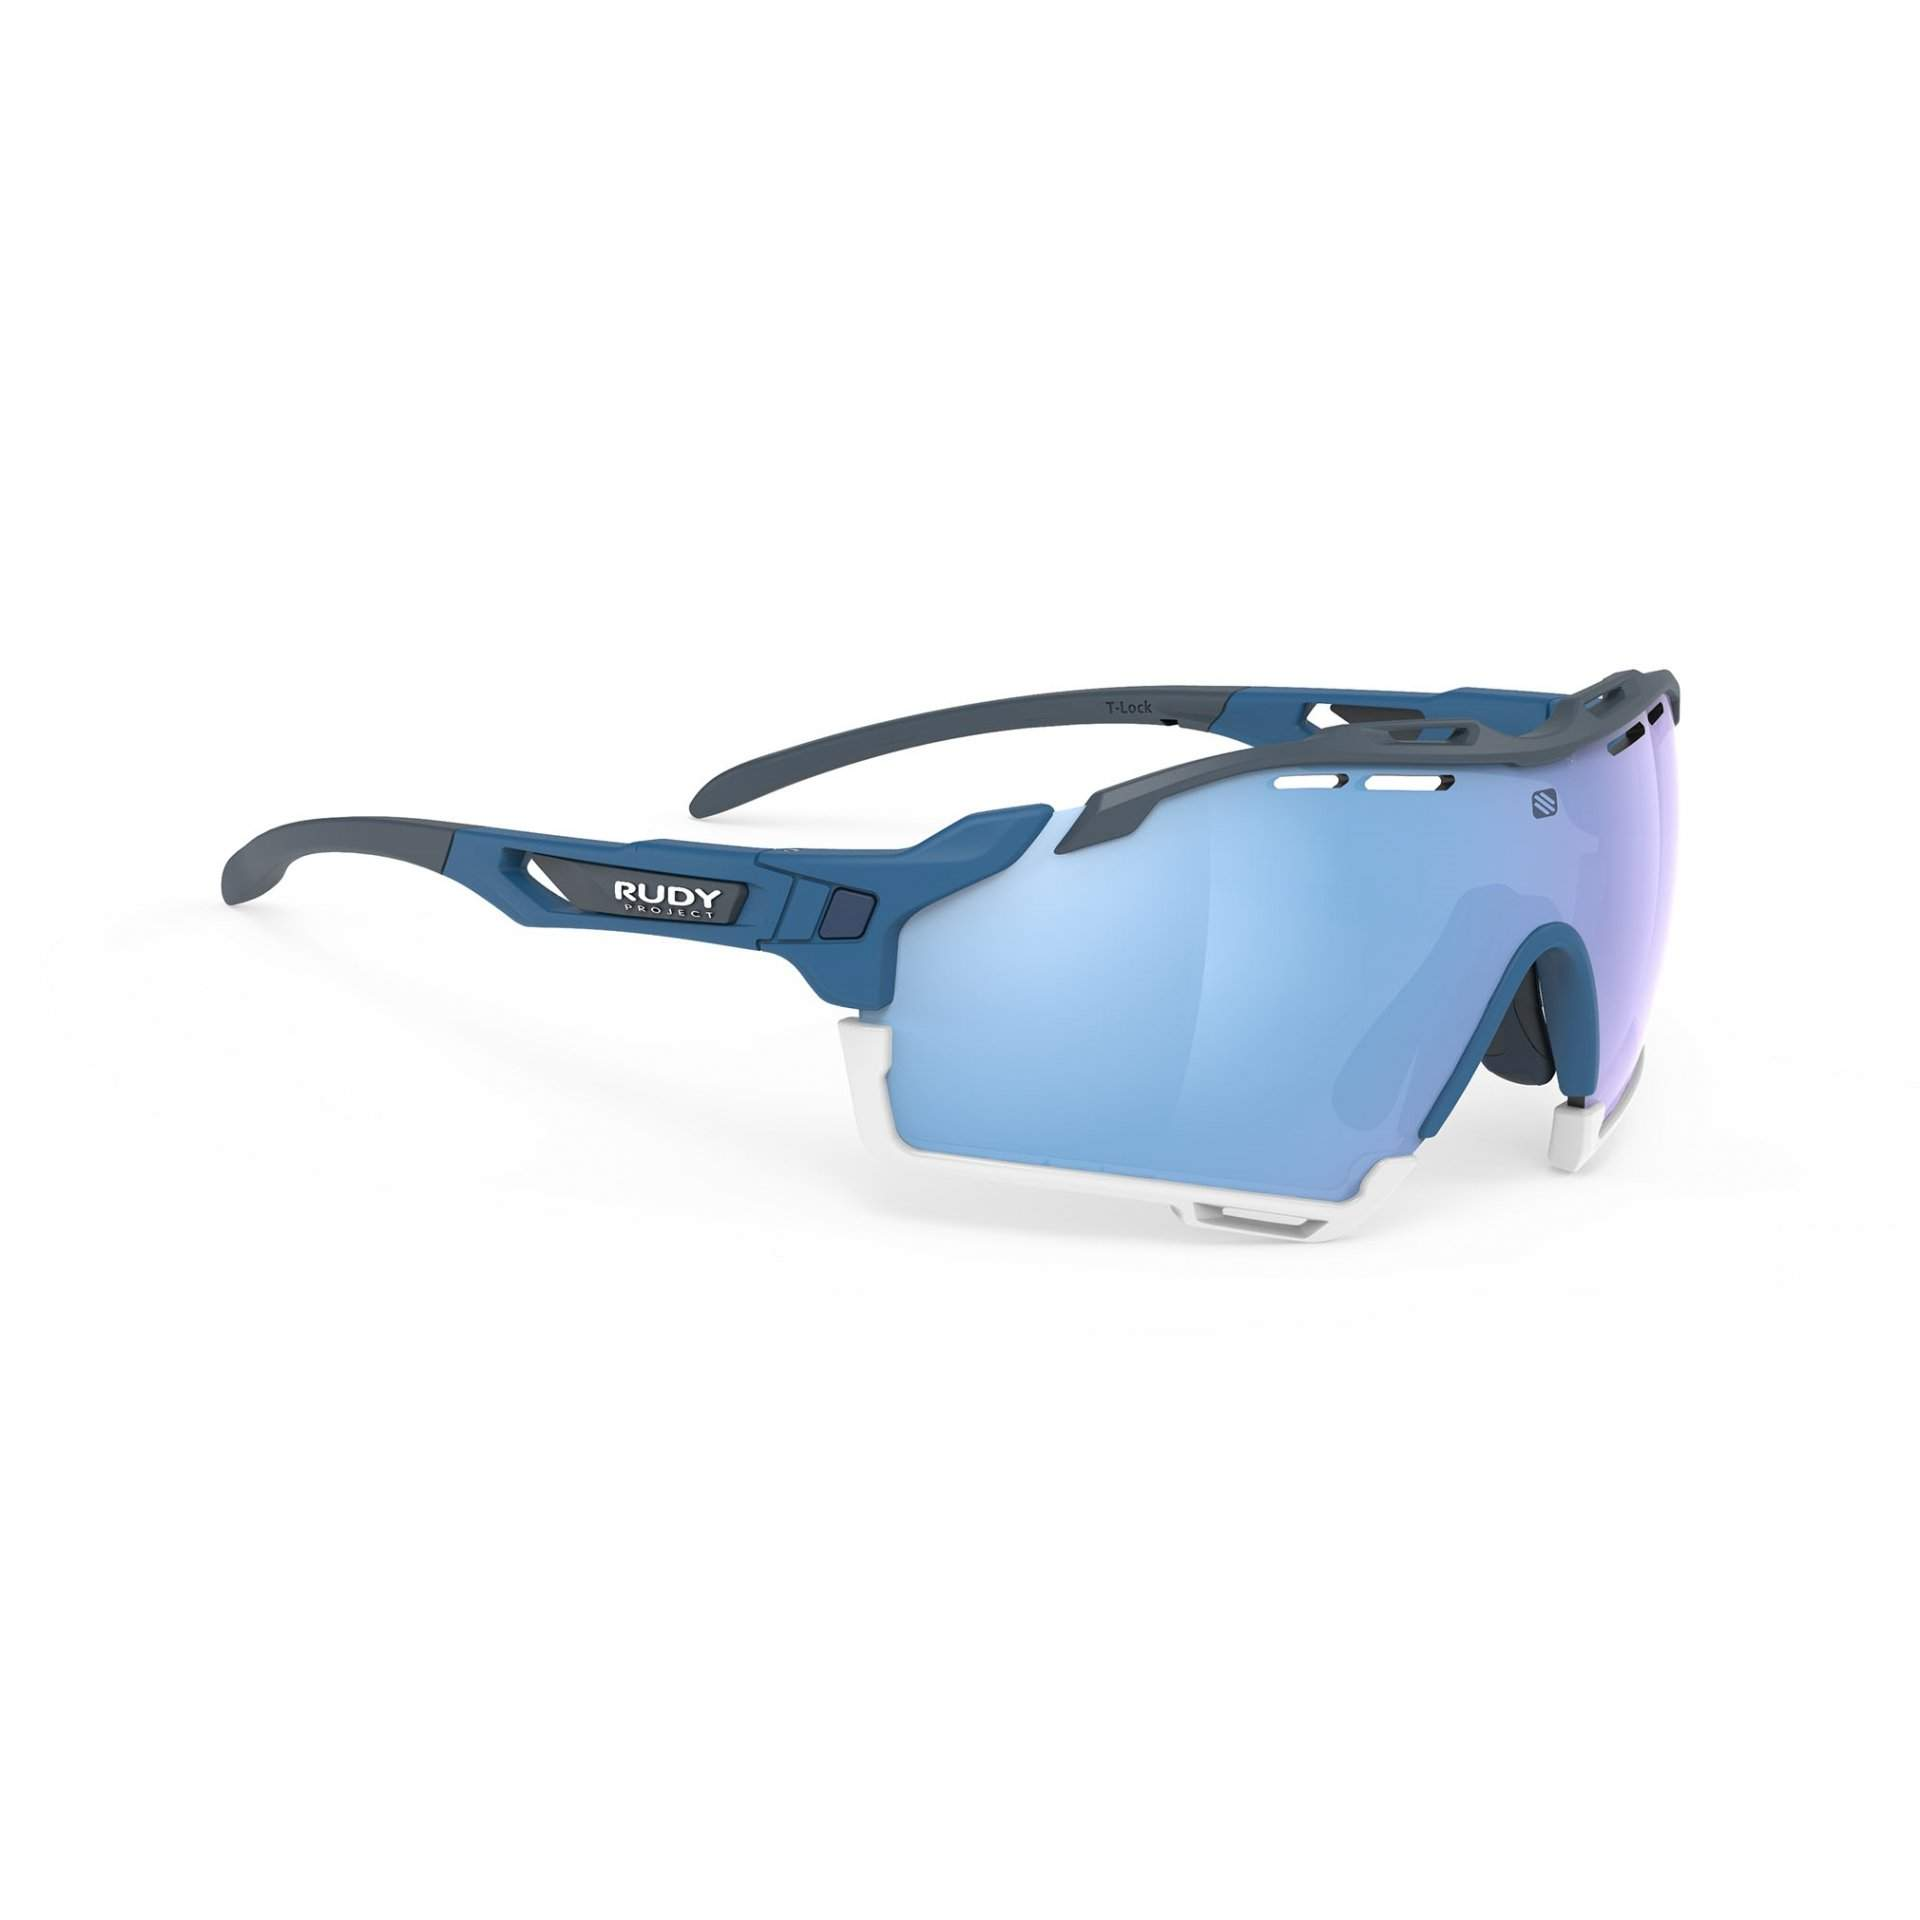 OKULARY RUDY PROJECT CUTLINE MULTILASER ICE + PACIFIC BLUE MATTE SP6368490000